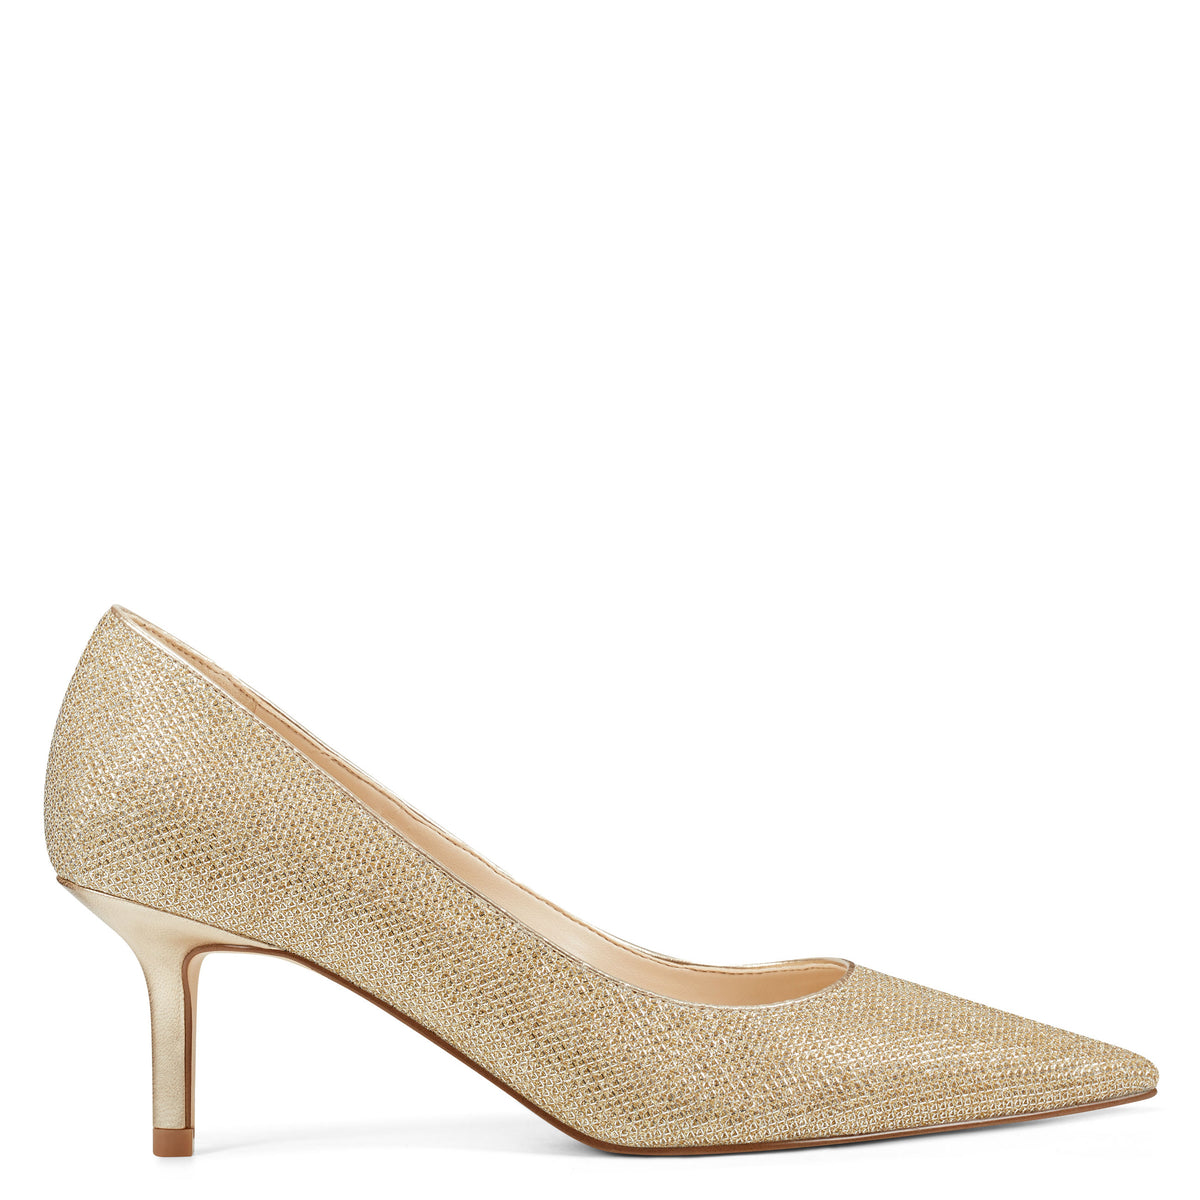 Arlene Dress Pump